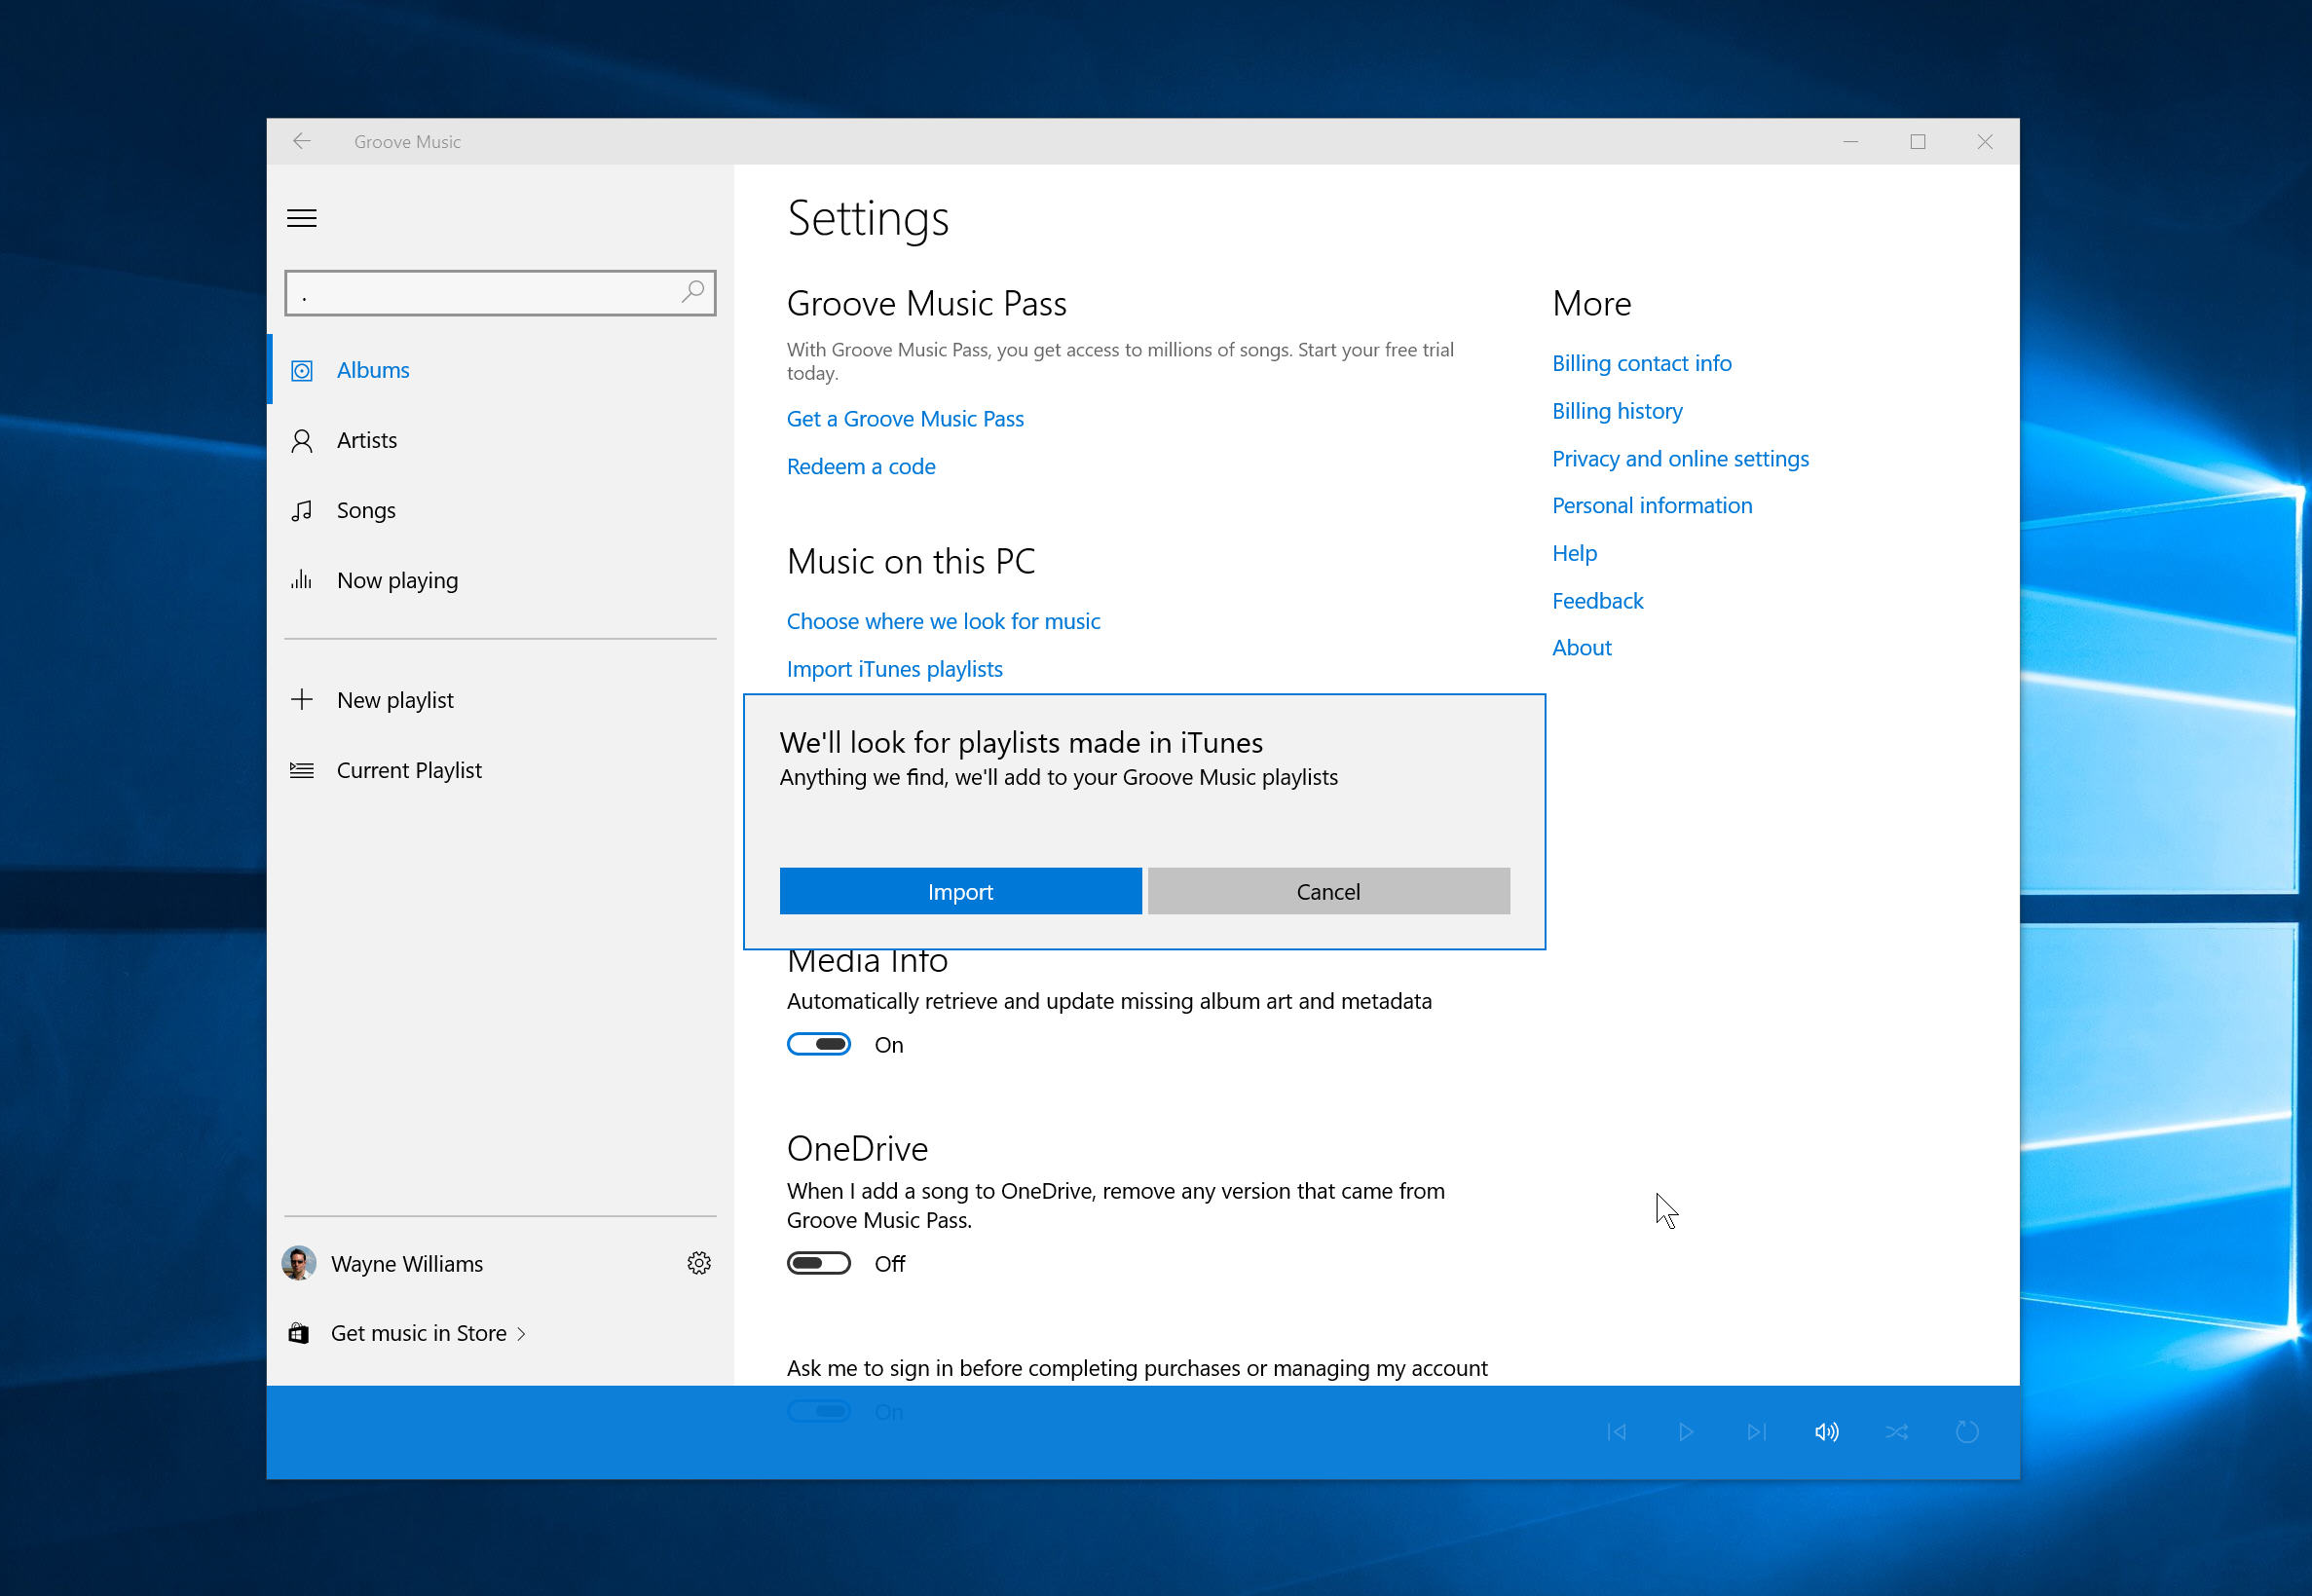 How to import iTunes playlists into Groove Music in Windows 10